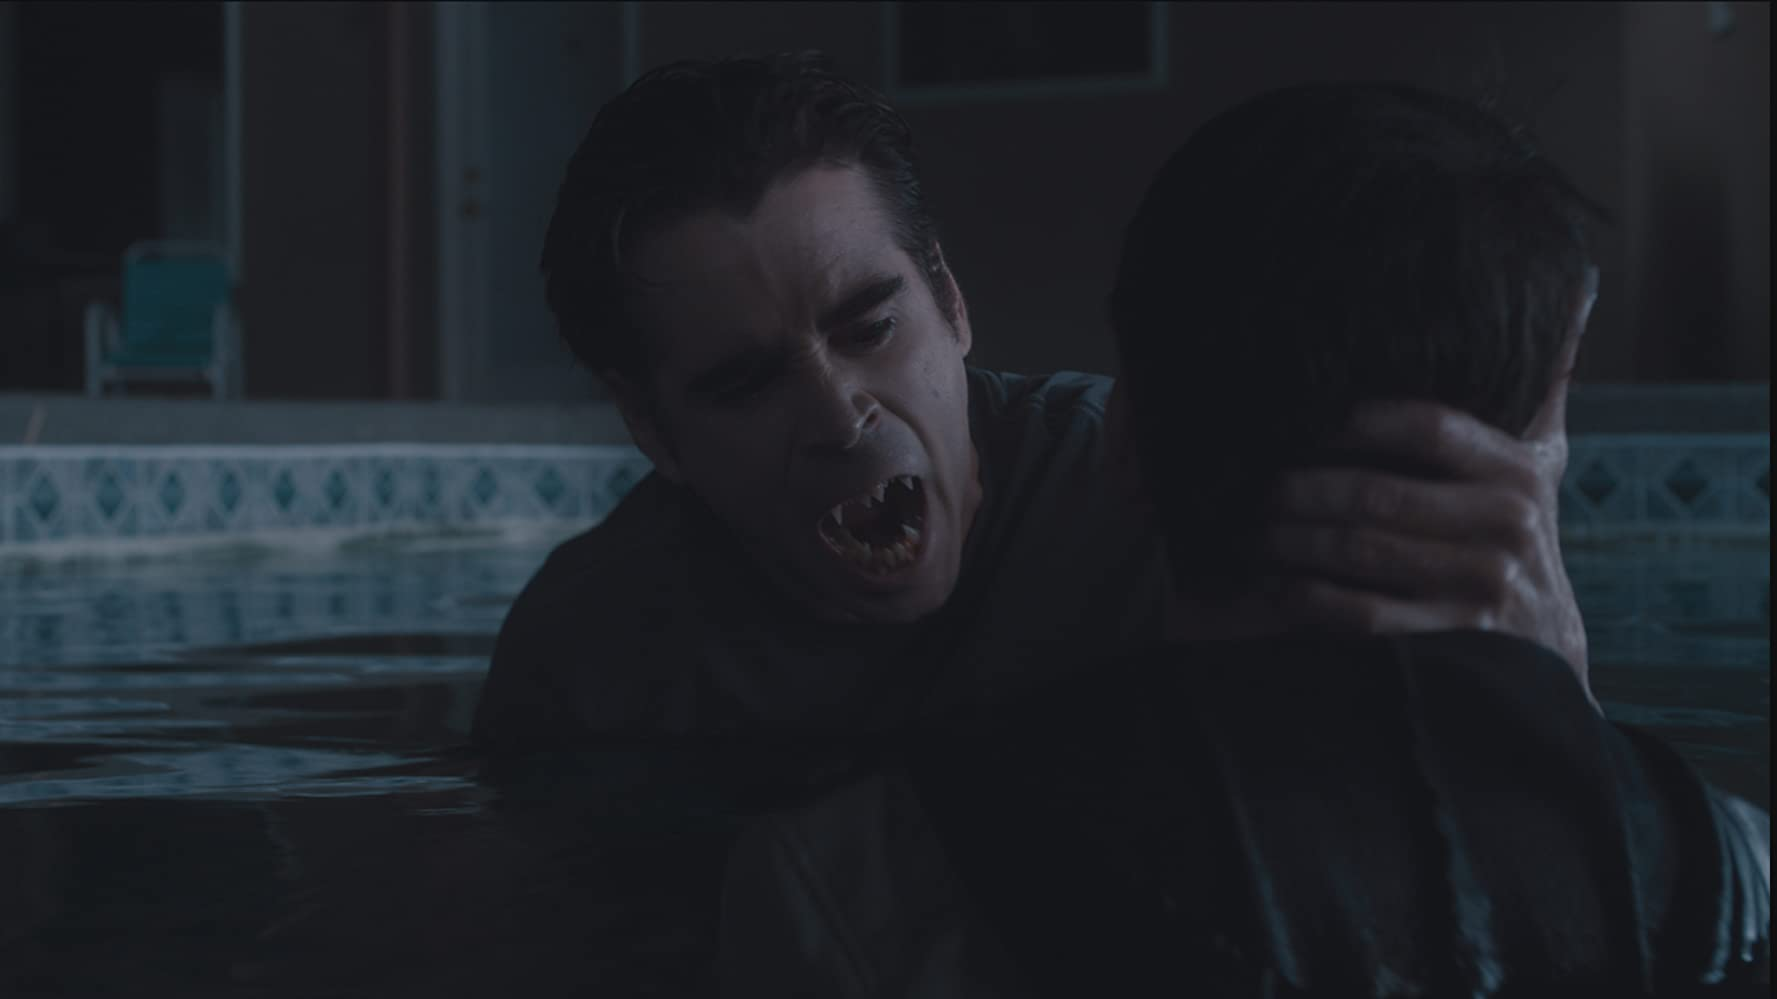 Colin Farrell and Christopher Mintz-Plasse in Fright Night (2011)